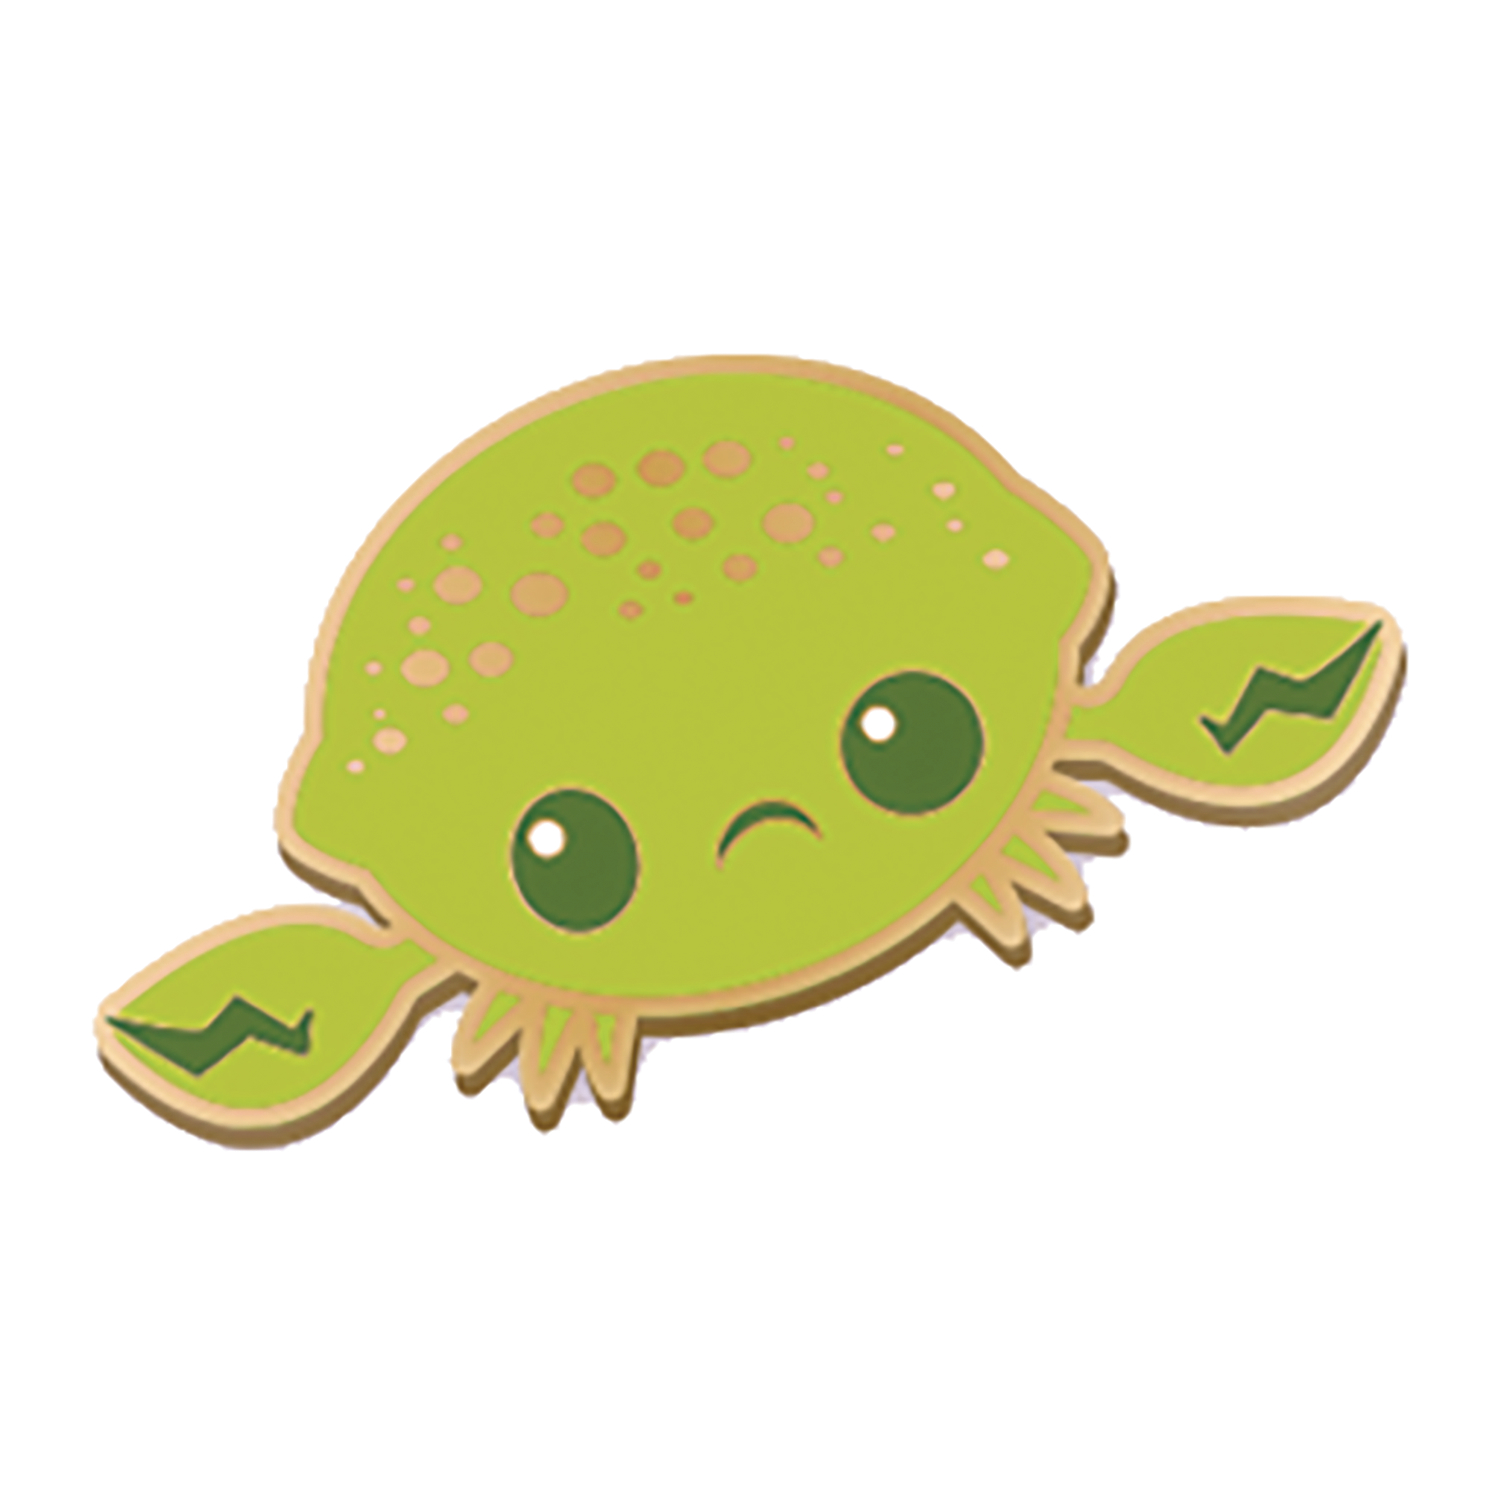 INKI-DROP LIME CRAB ENAMEL PIN